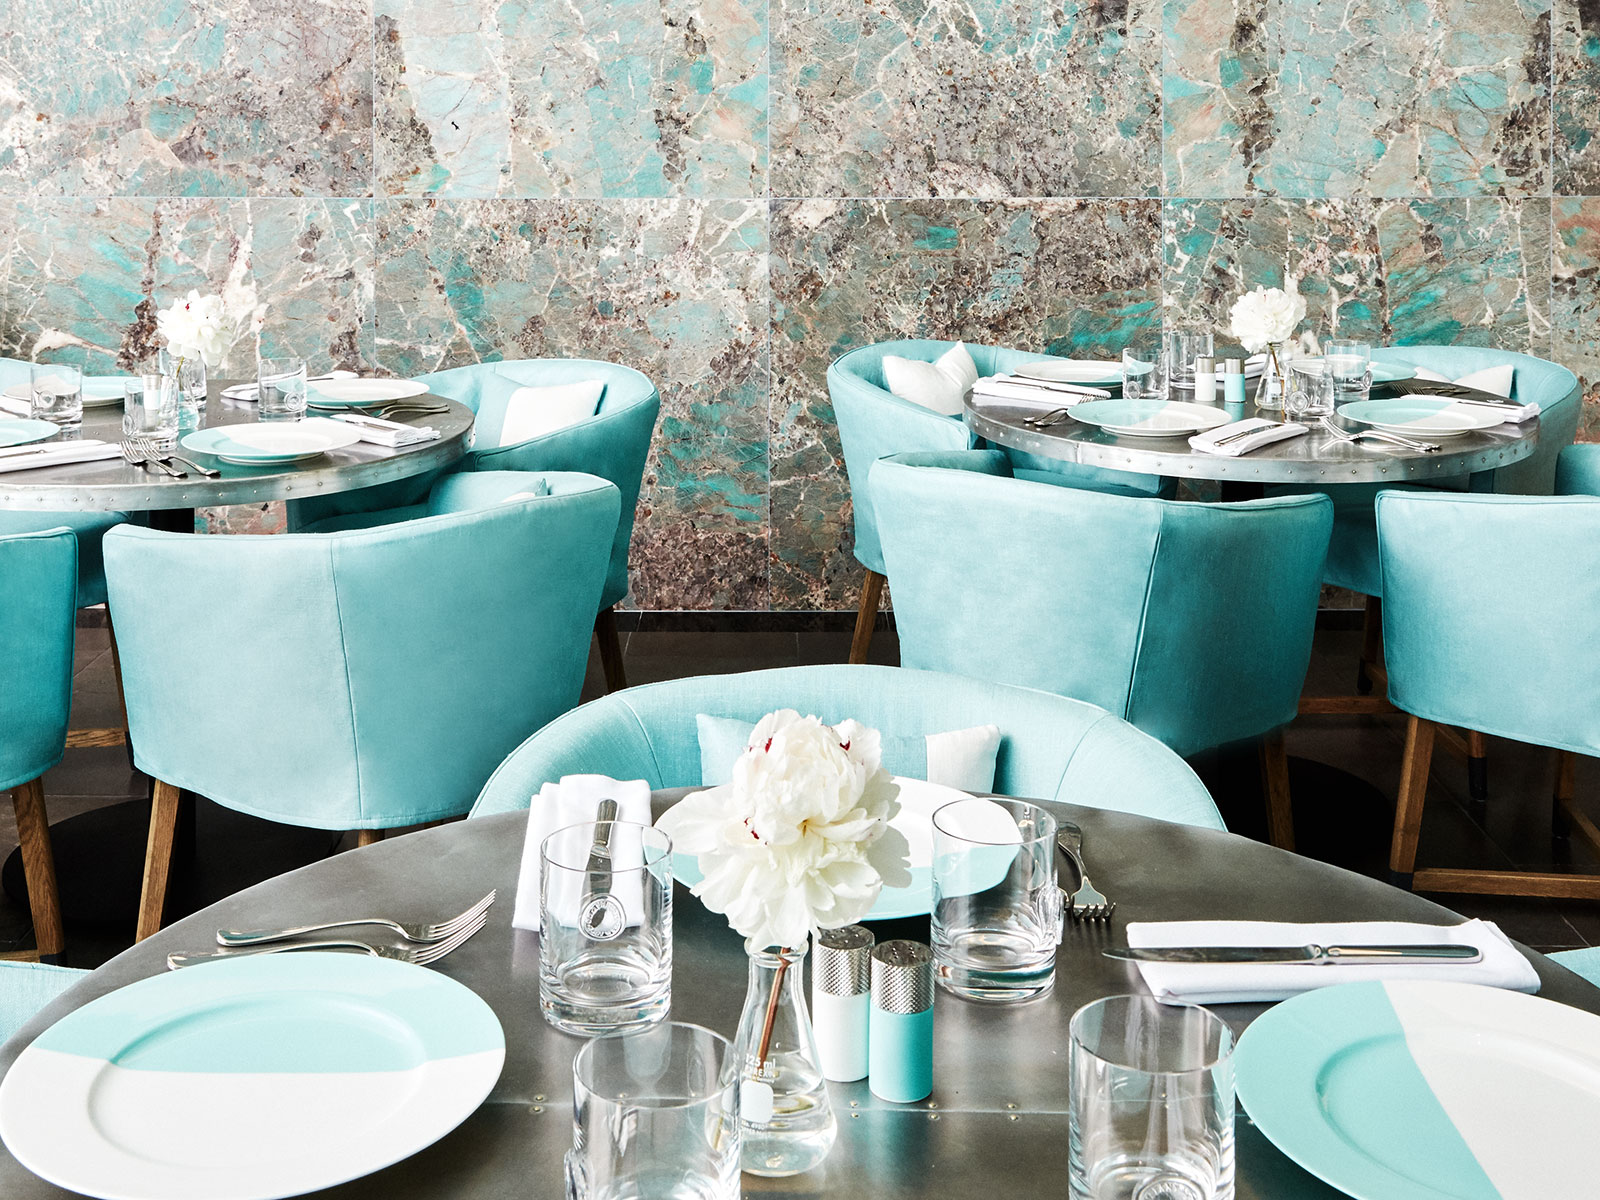 EC: You Can Finally Have Breakfast at Tiffany's